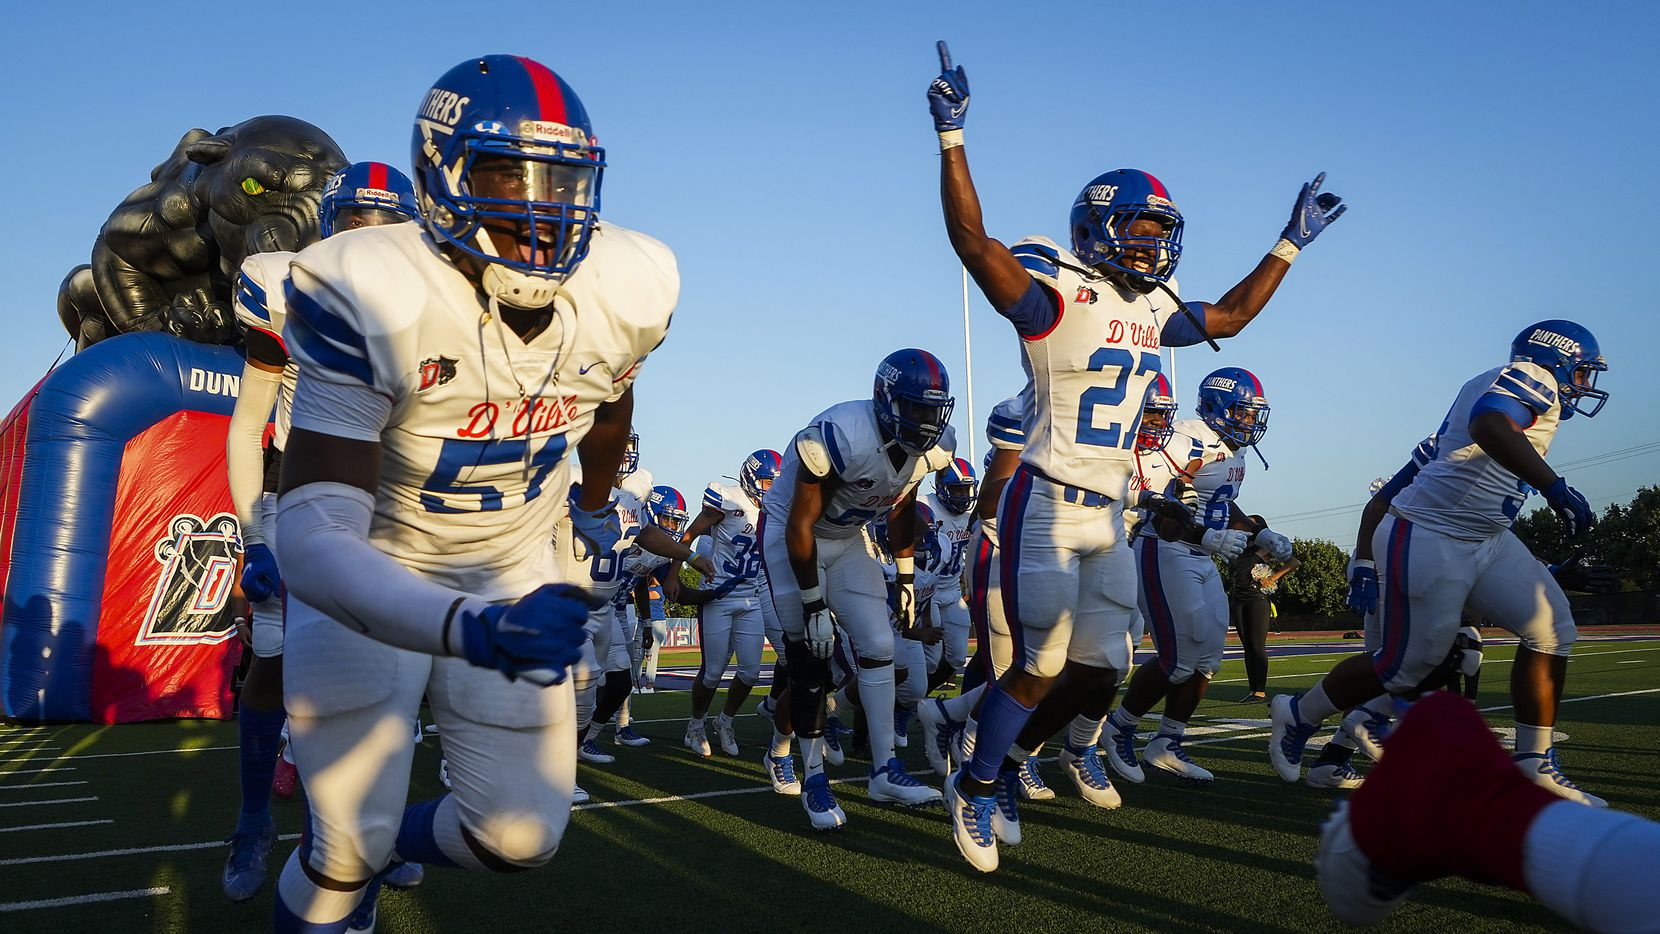 Duncanville players, including defensive lineman Josiah Drake (51) and running back Kaleb Kenney (27) take the field before a high school football game against Mater Dei on Friday, Aug. 27, 2021, in Duncanville.